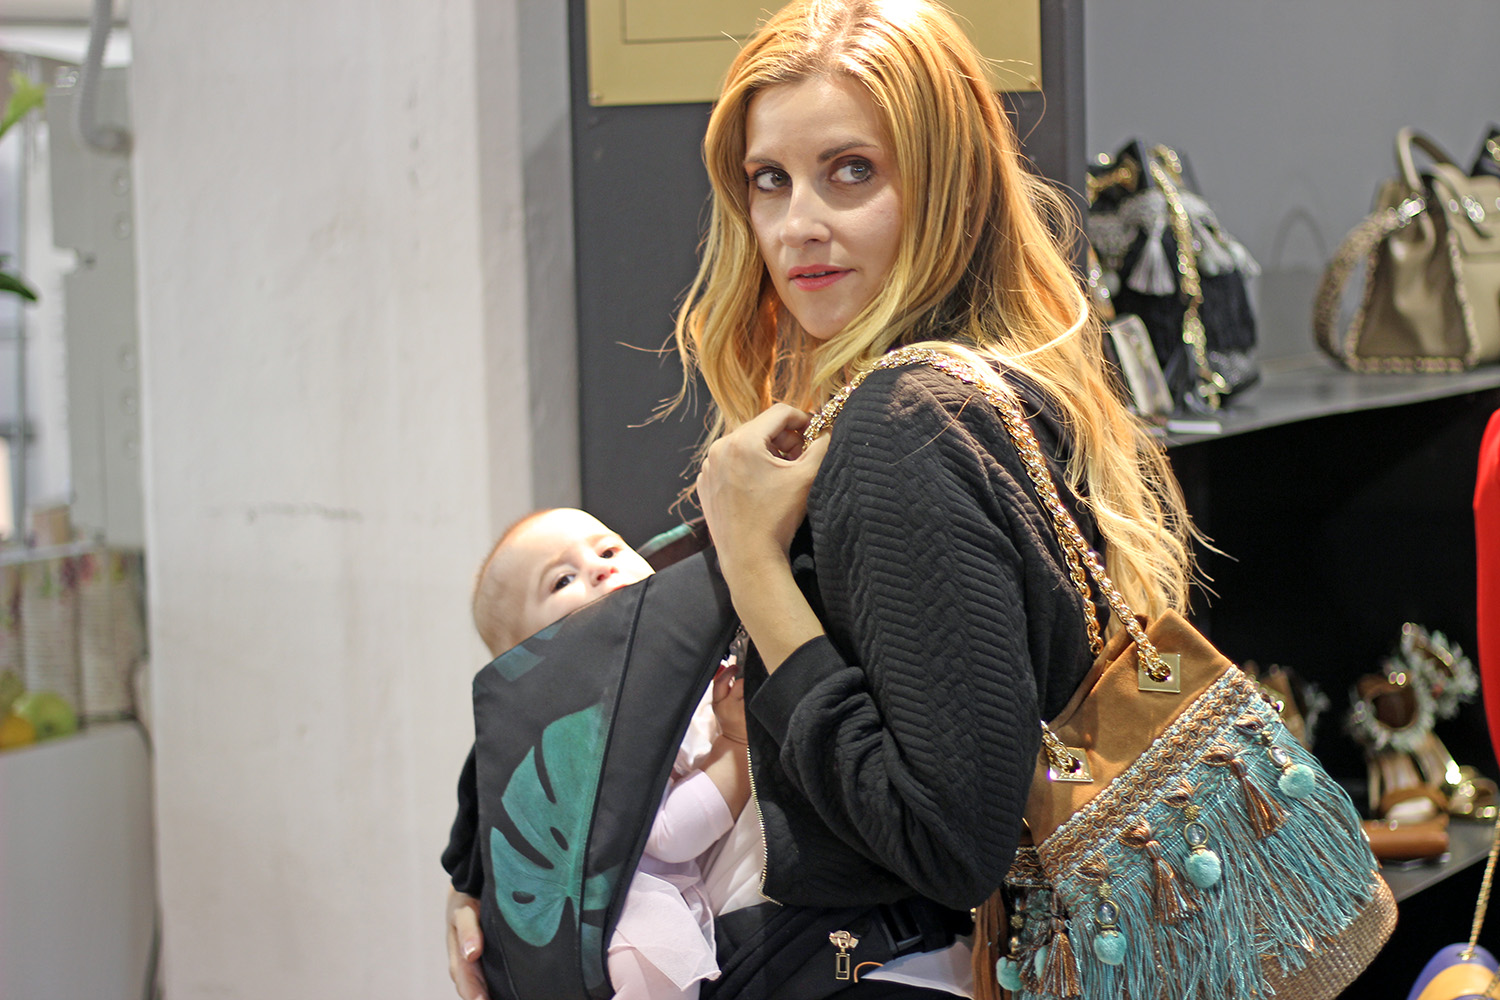 lara_masseroni_la_carrie_bag_fashion_blogger_mamme